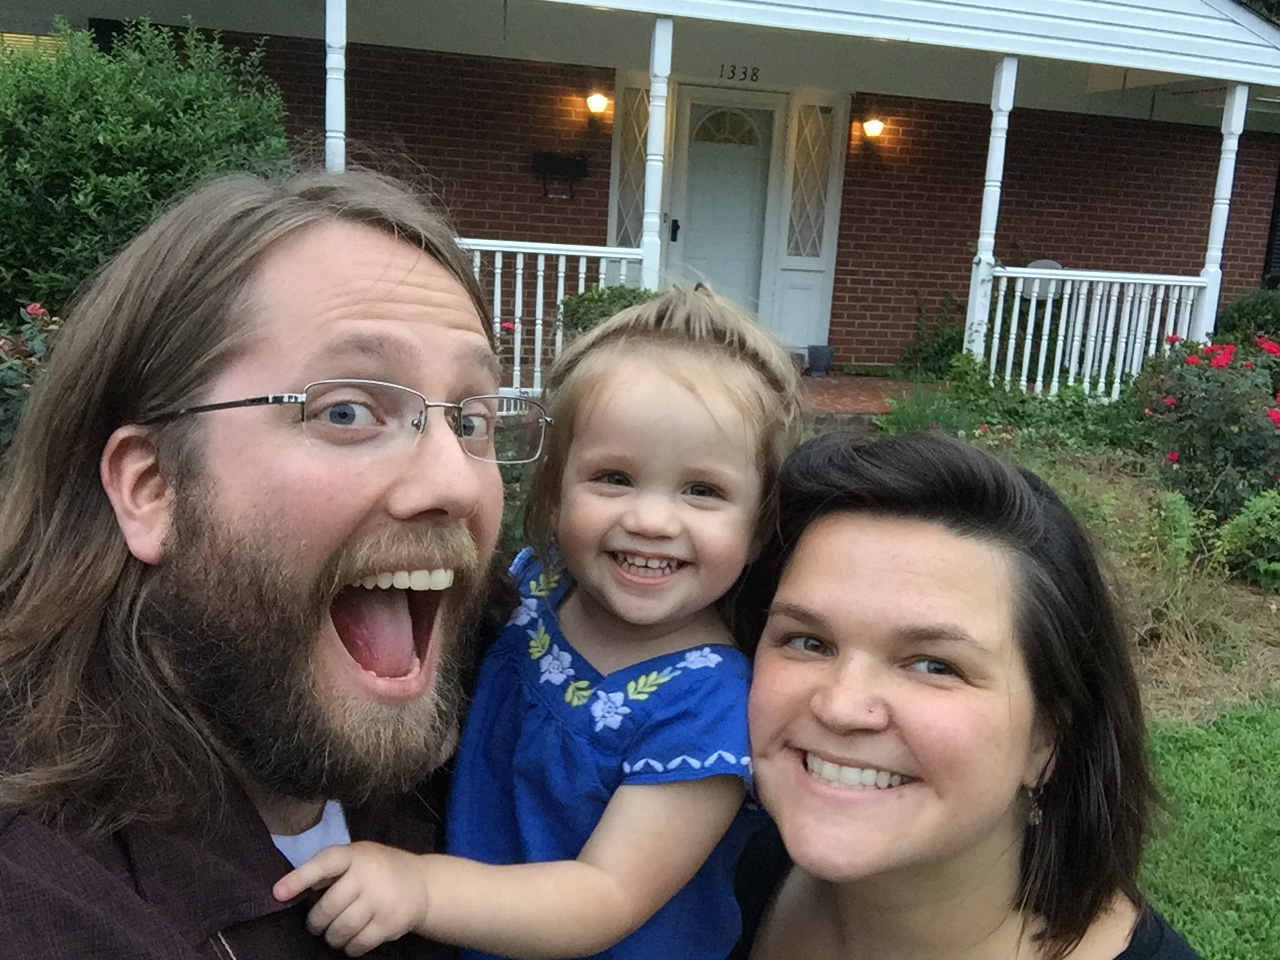 (from left to right) Evan, Robin (their daughter), and Lauren (his Wife) seen here in front of their older house in NC.